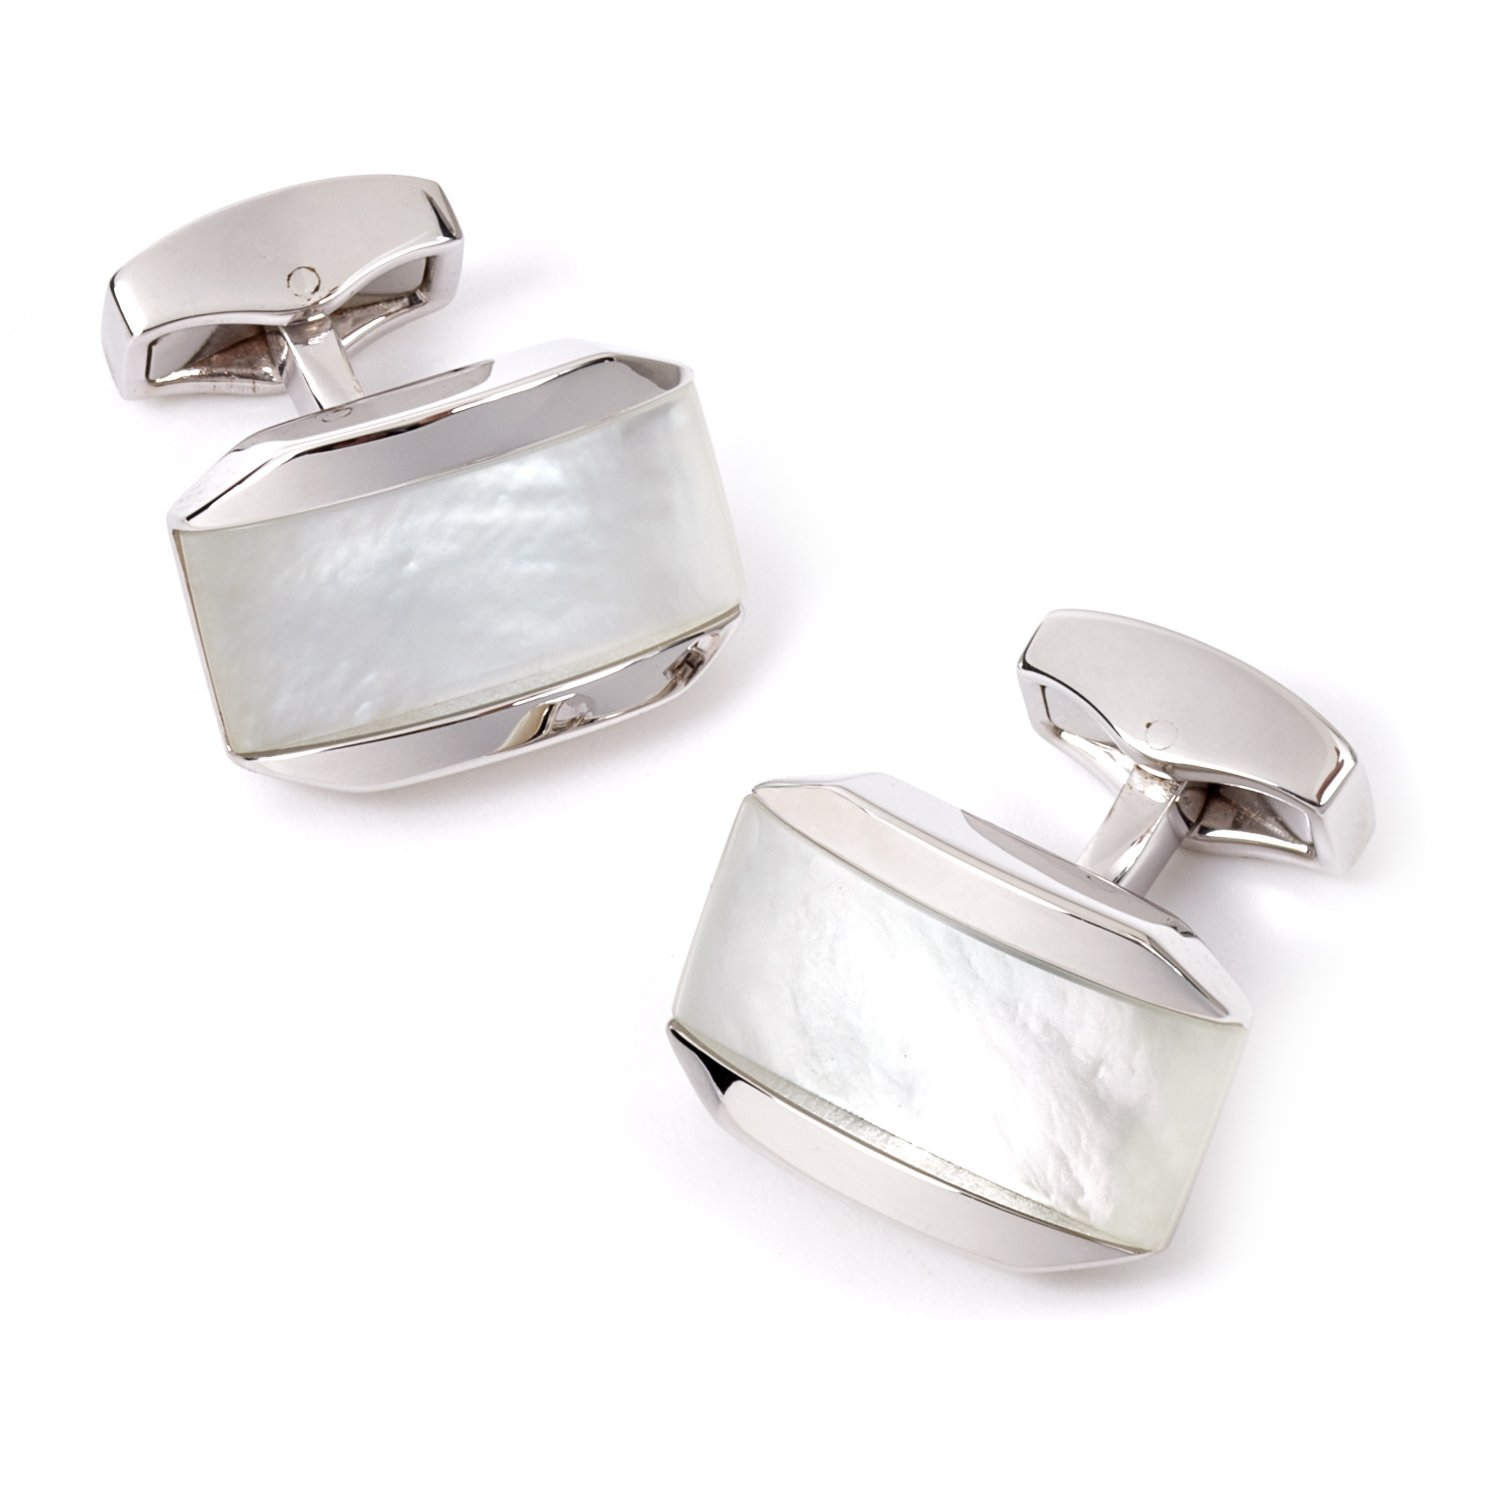 Tateossian Moonlight Cufflinks with Mother of Pearl combined with a Cabochan of Quartz in a Rhodium Silver Tonneau Case, White